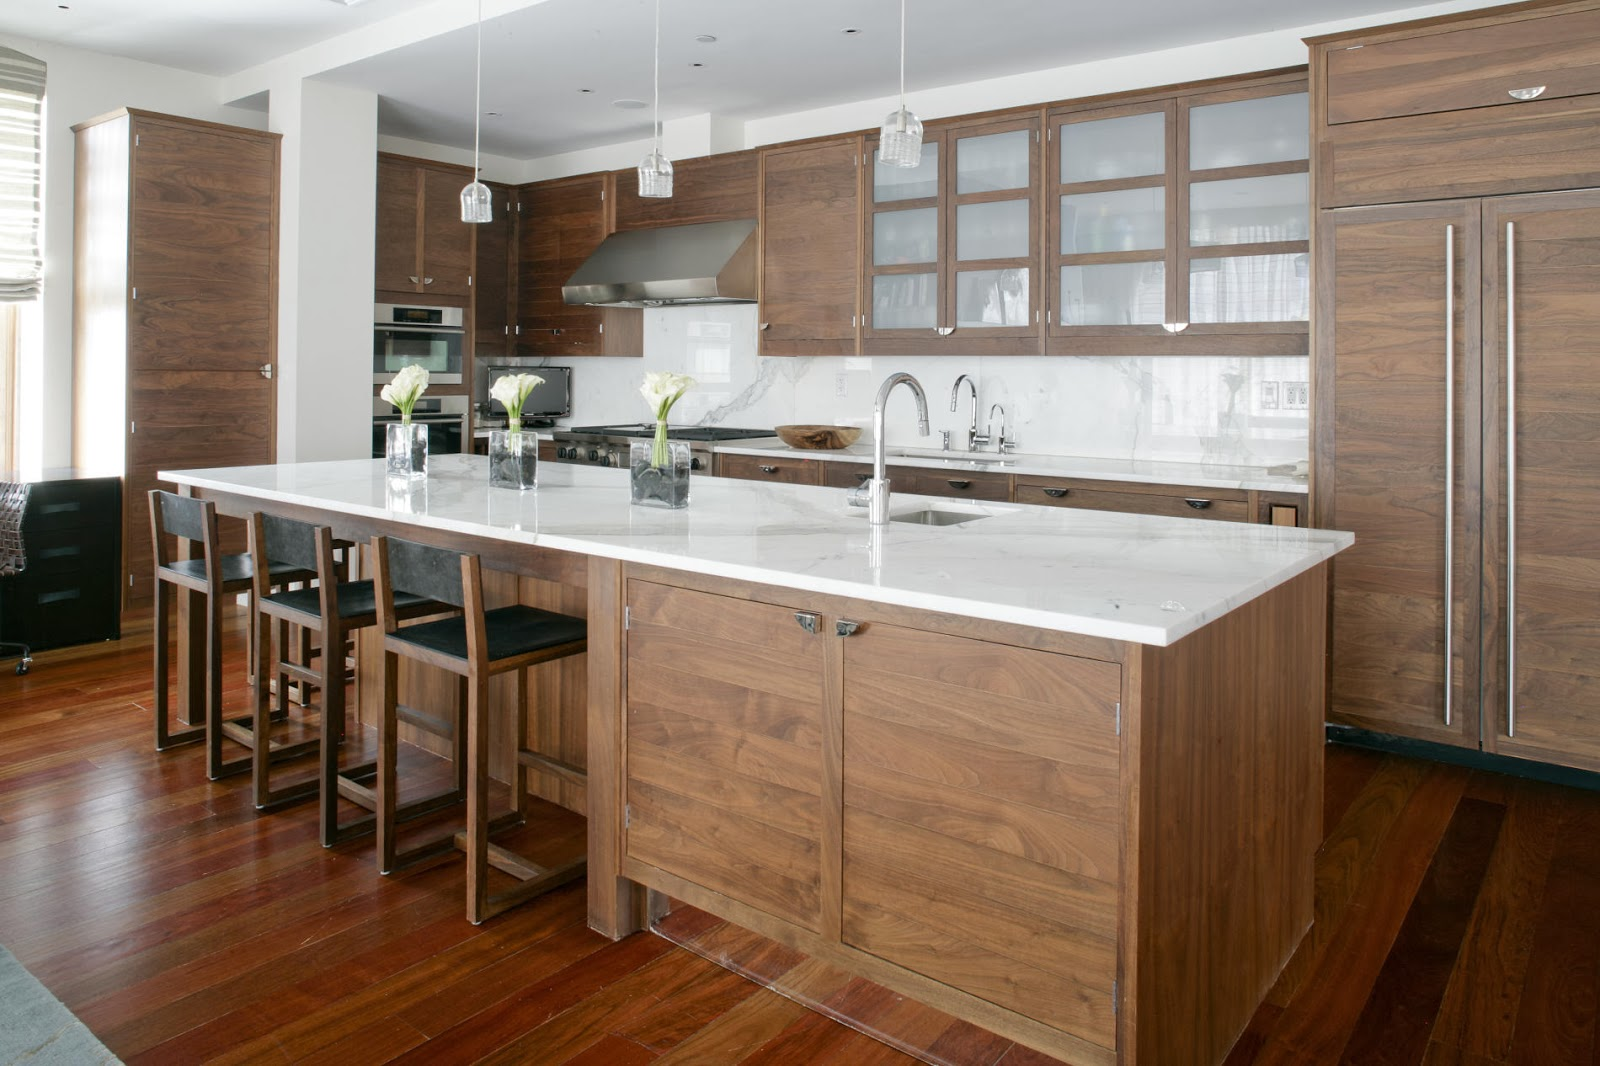 Interiornity source of interior design ideas for Modern wood kitchen cabinets